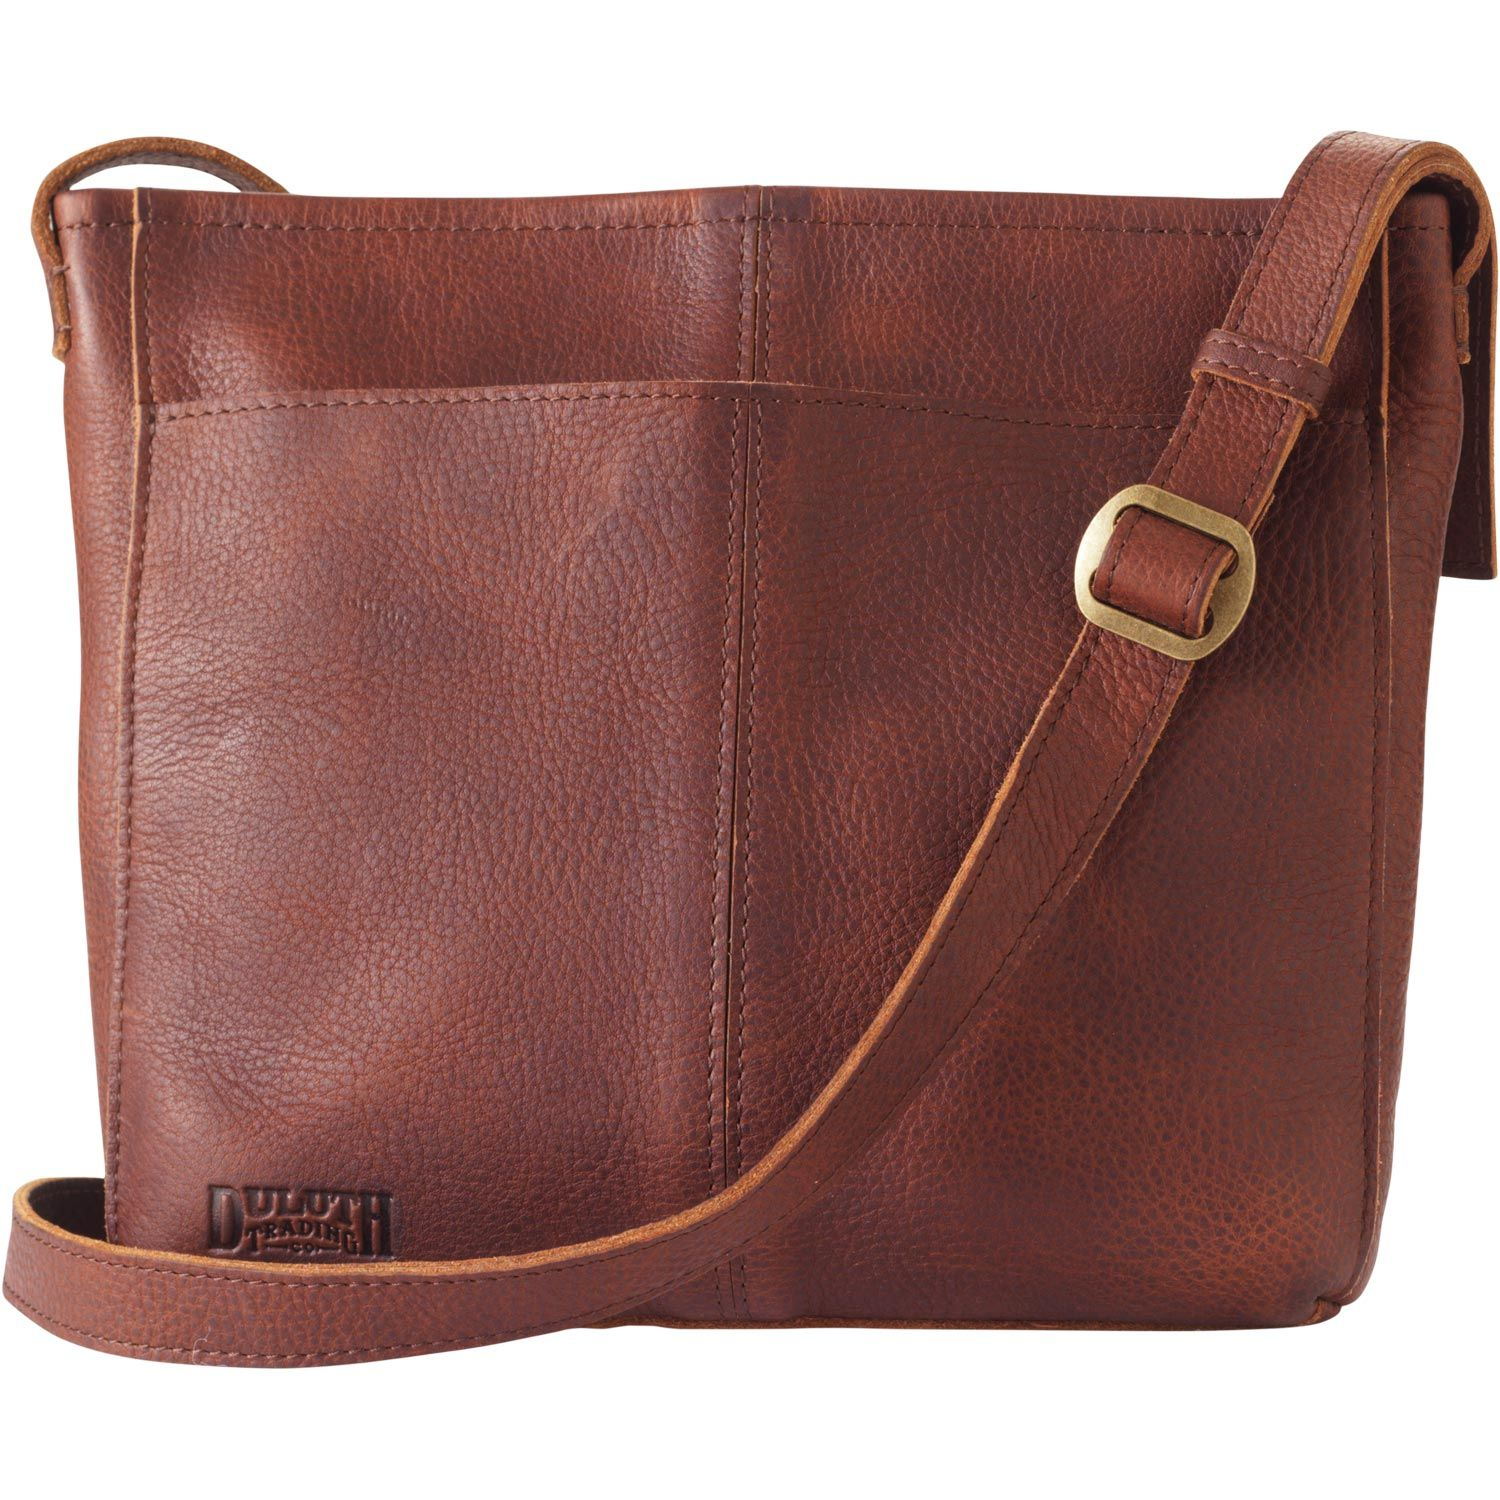 72dd65b1df9 Lifetime Leather Medium Sling Bag is big enough to hold all you need  without toppling you over. The full-grain leather variations makes each bag  unique.